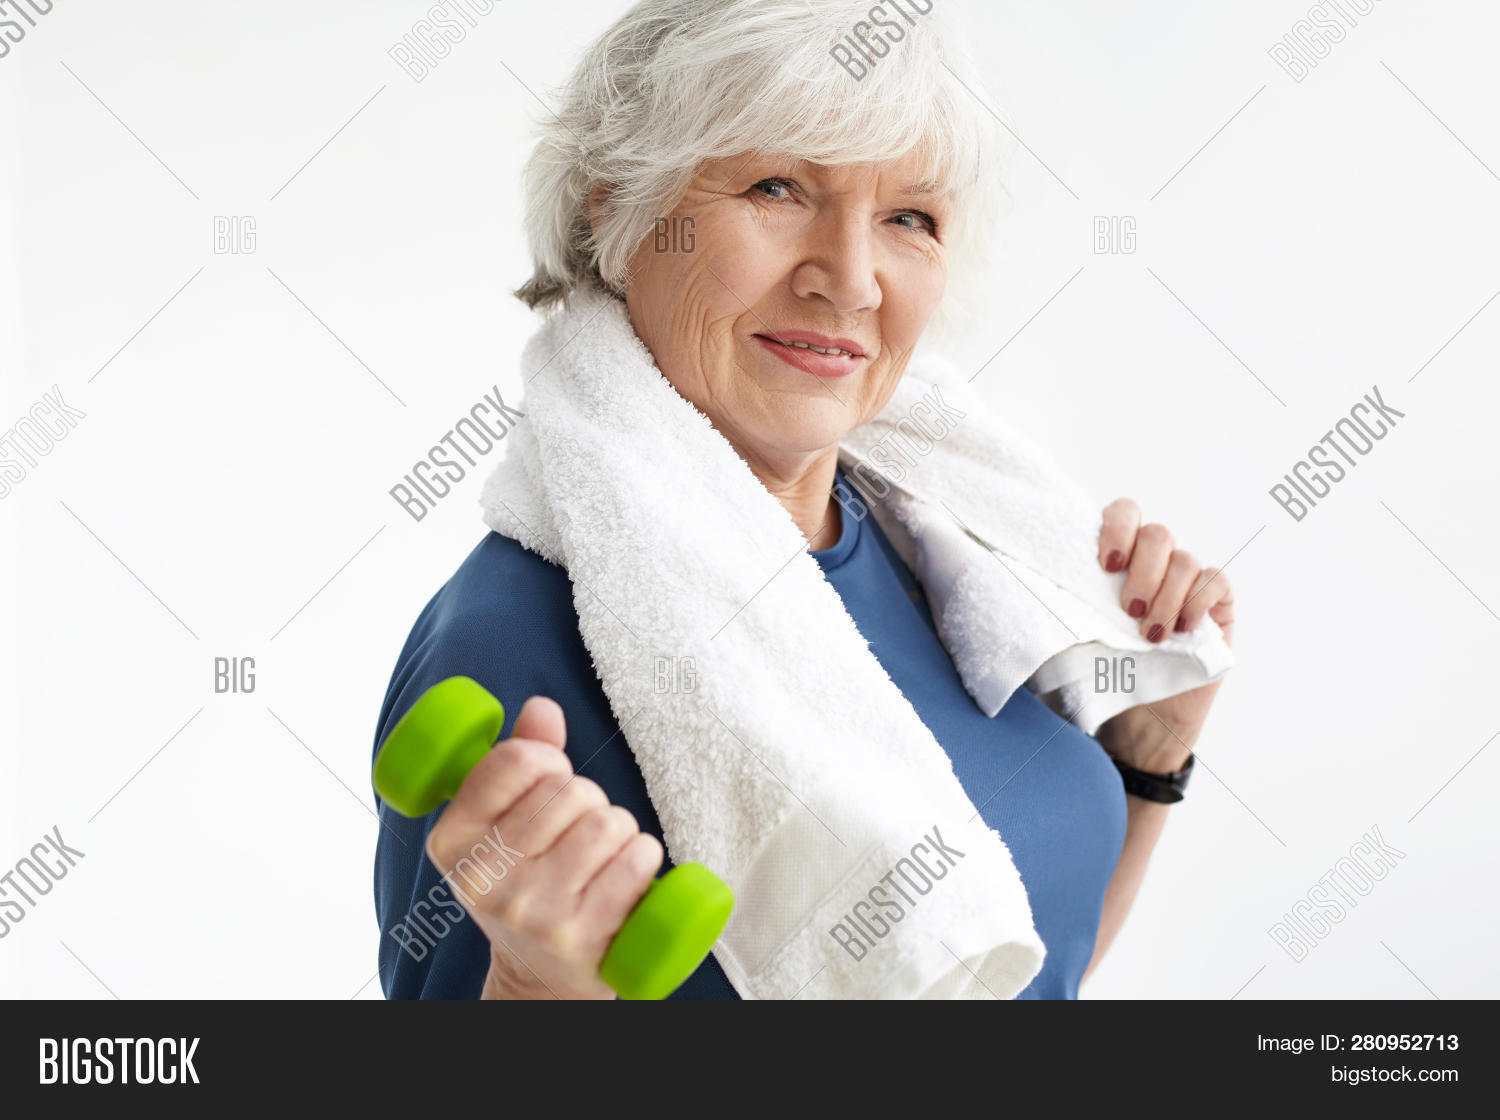 60s,active,activity,adult,aged,background,care,casual,caucasian,dumbbell,elderly,energetic,exercise,female,fit,fitness,gym,happiness,happy,health,healthcare,healthy,hobby,home,indoors,leisure,lifestyle,mature,old,older,pensioner,people,person,portrait,retired,retirement,senior,smiling,sport,sportswear,strength,towel,training,wellbeing,wellness,white,woman,workout